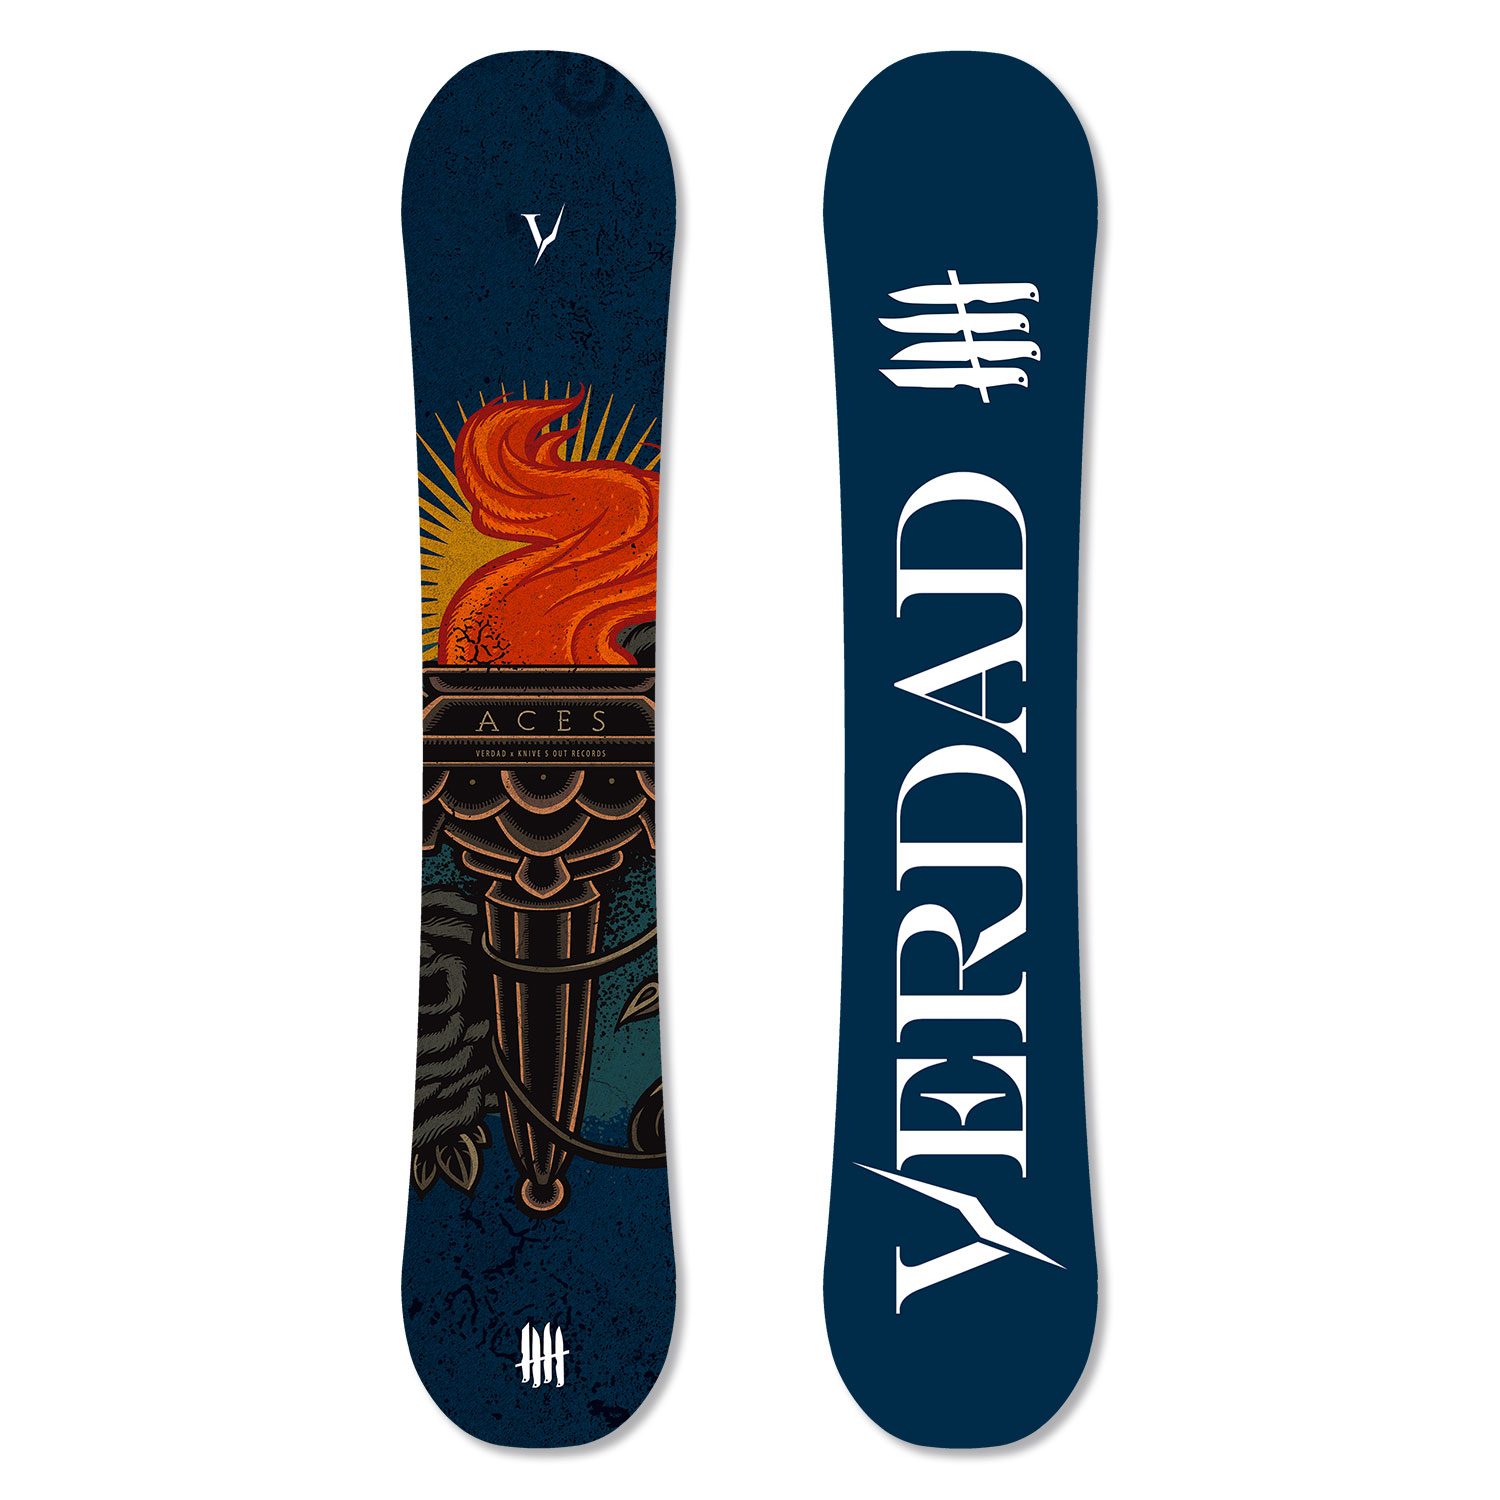 """Knives Out records x Verdad snowboards """"Aces"""" limited series"""